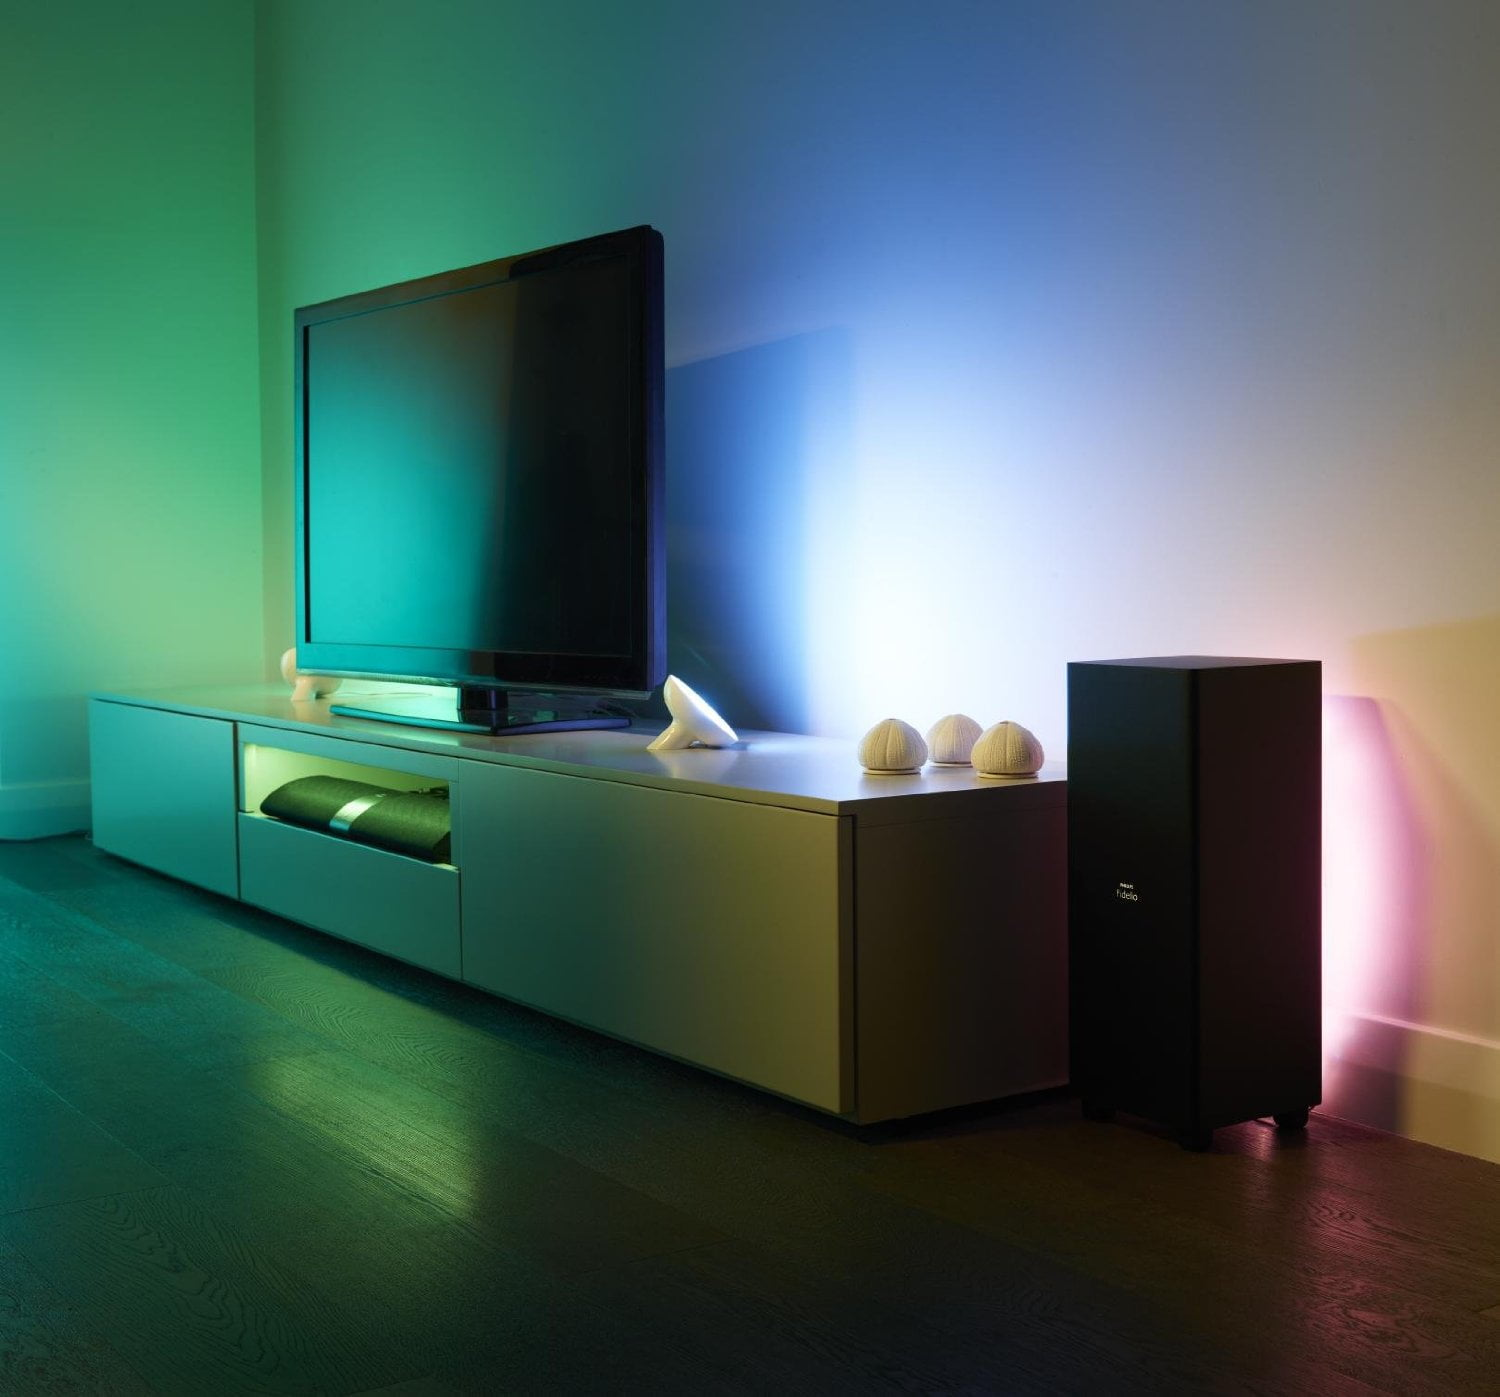 Philips Hue and 16 million colours